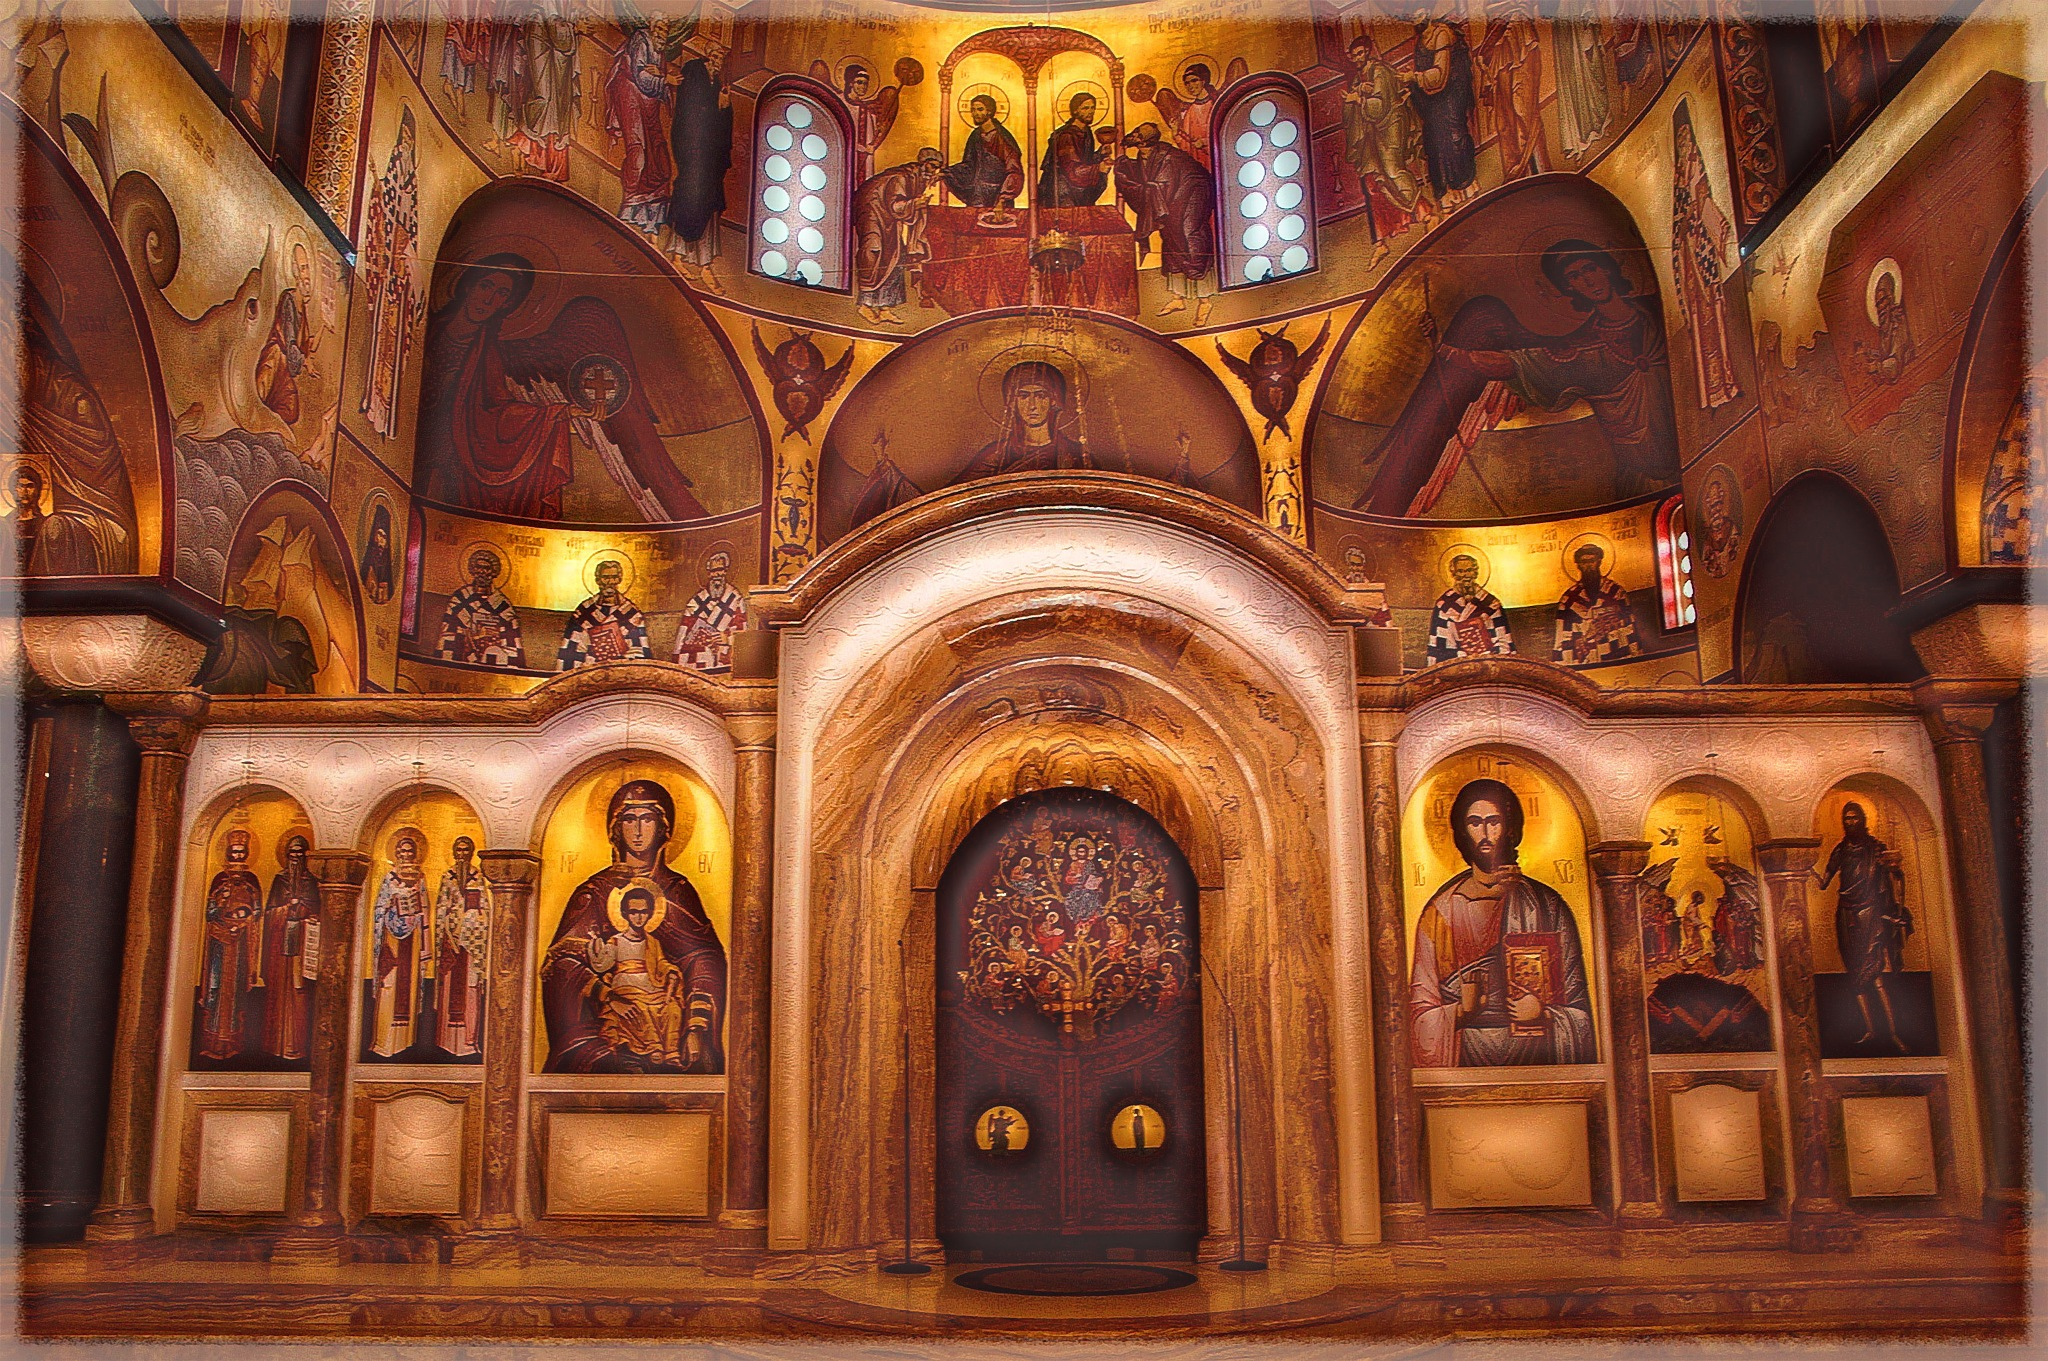 the interior of the Orthodox church of the Resurrection of Christ by Milos Jacimovic